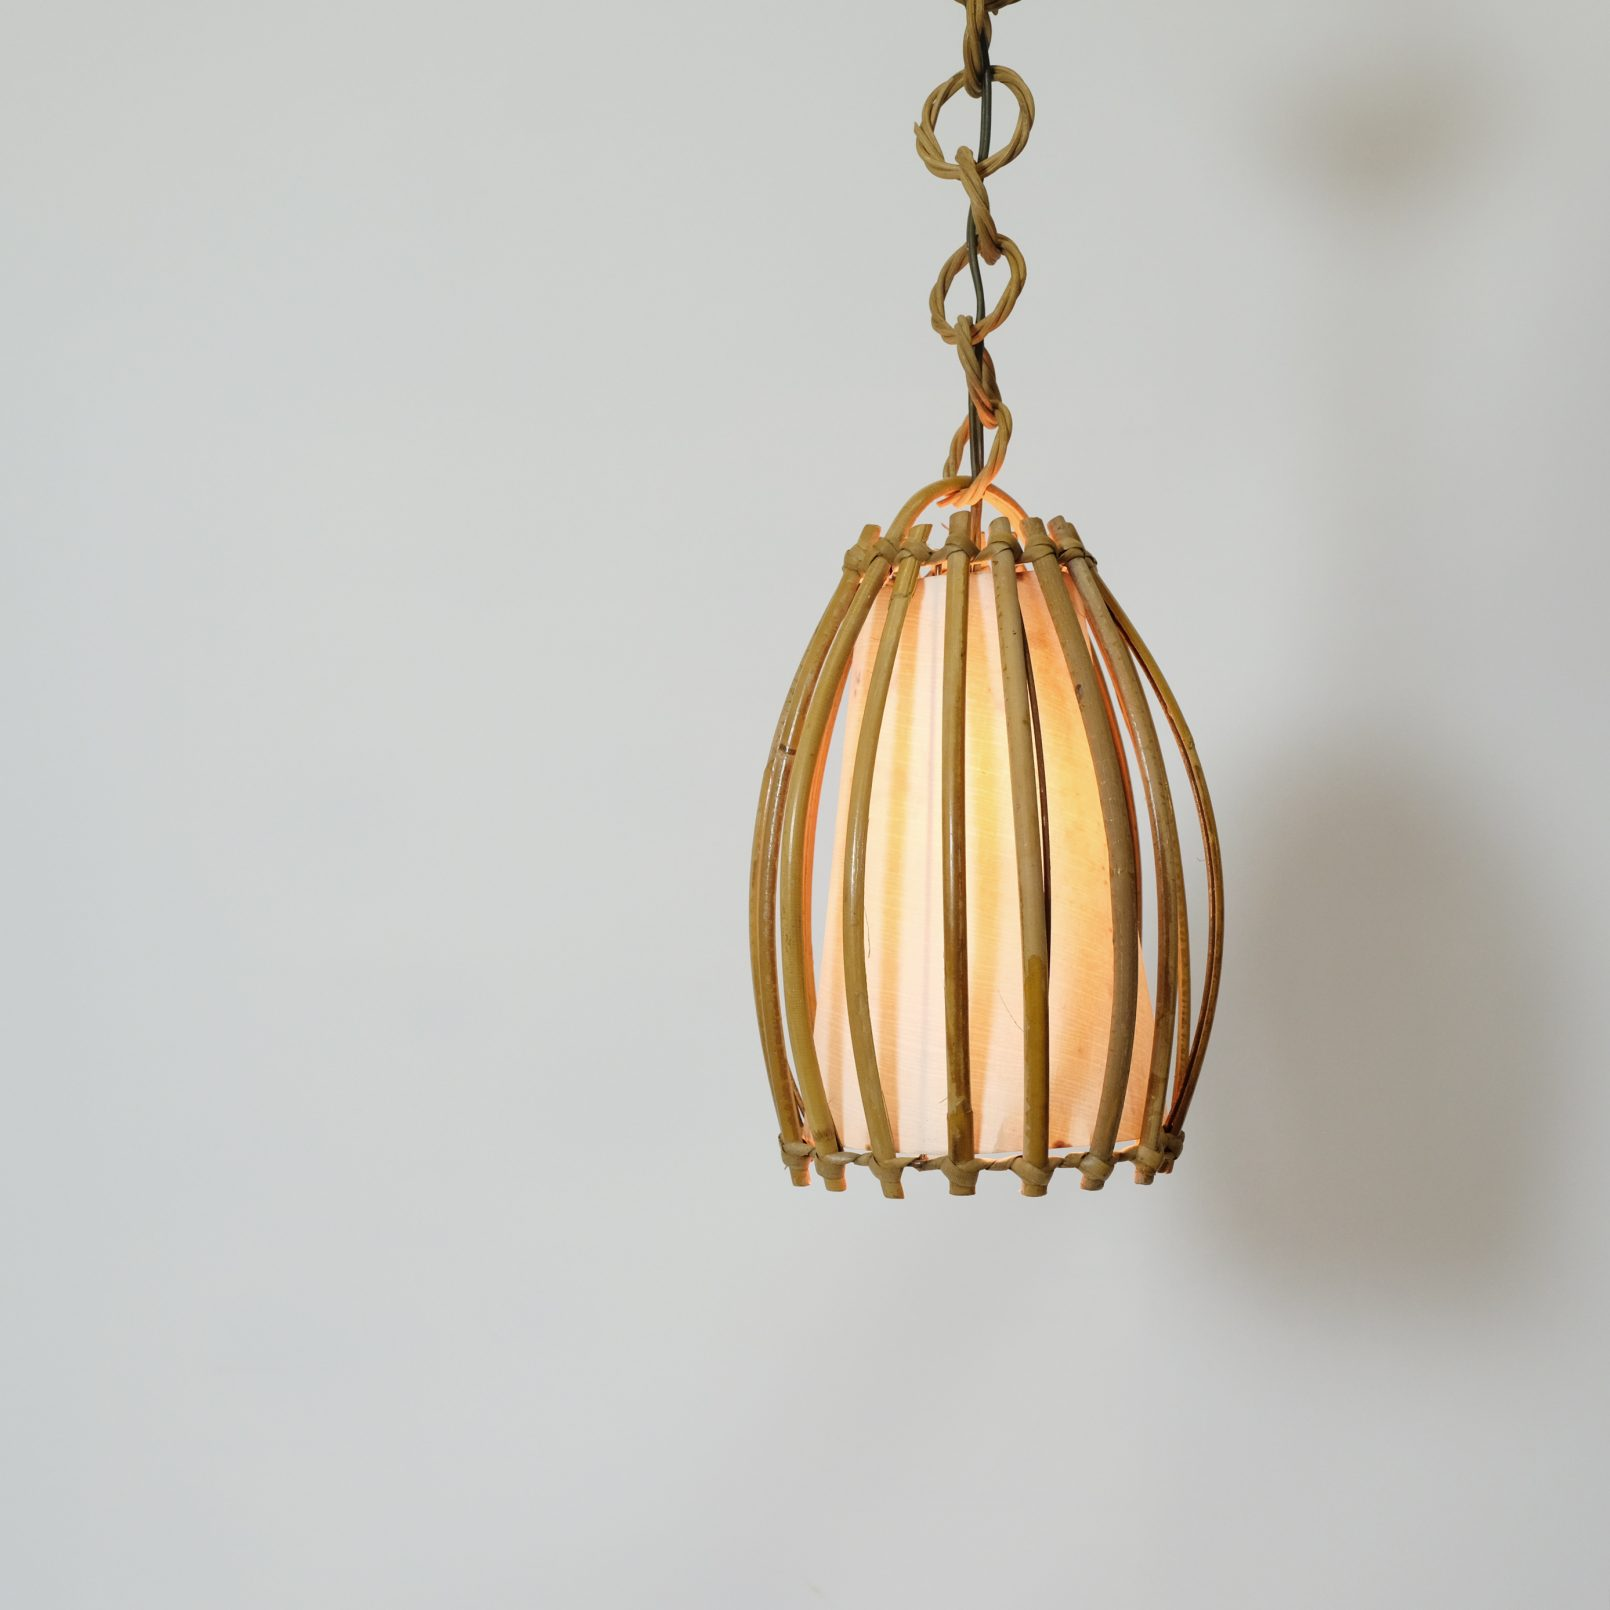 Charming French bamboo pendant from the sixties.